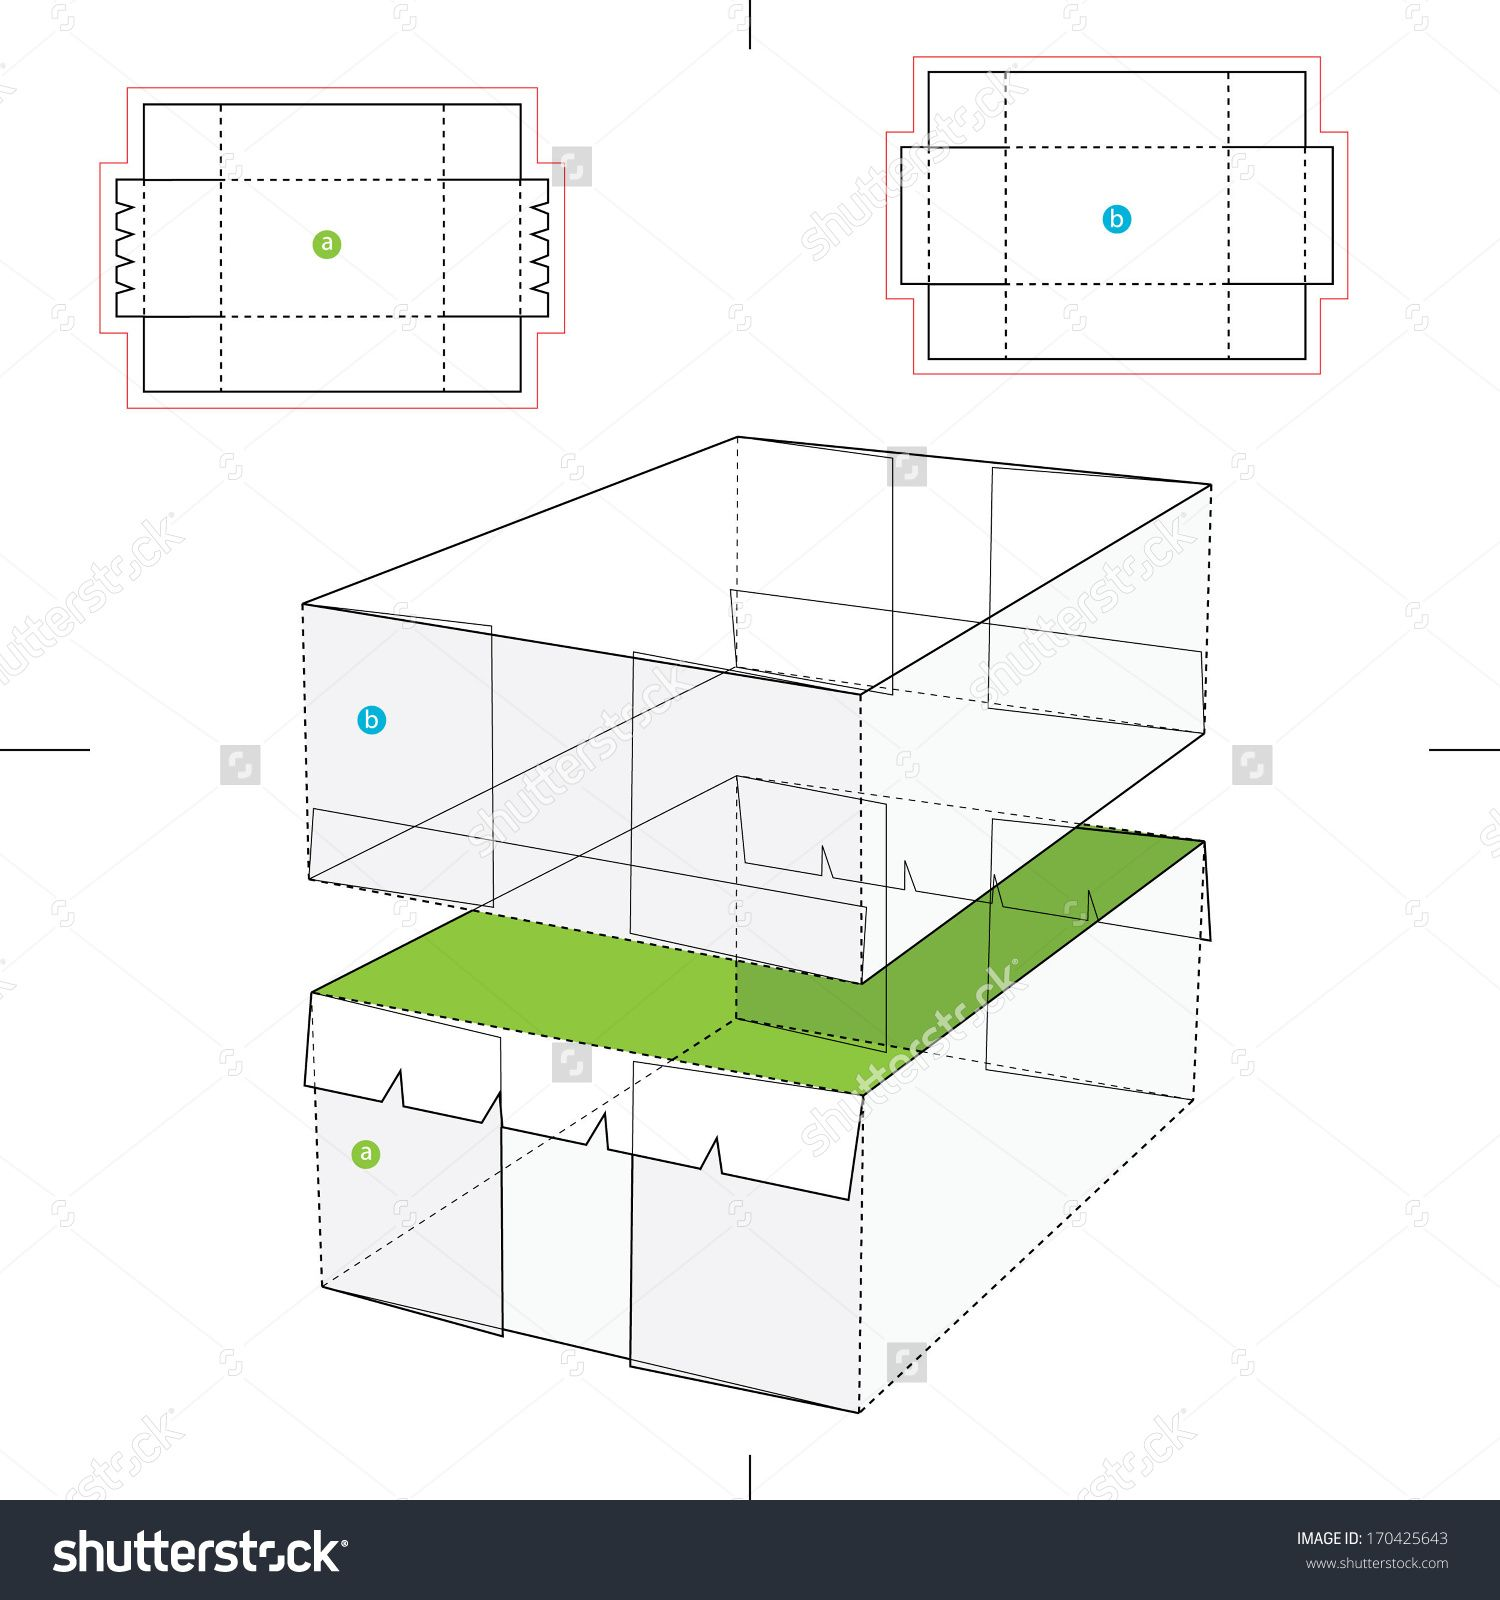 Tray Box And Lid With Blueprint Layout Stock Vector Illustration 170425643 : Shutterstock